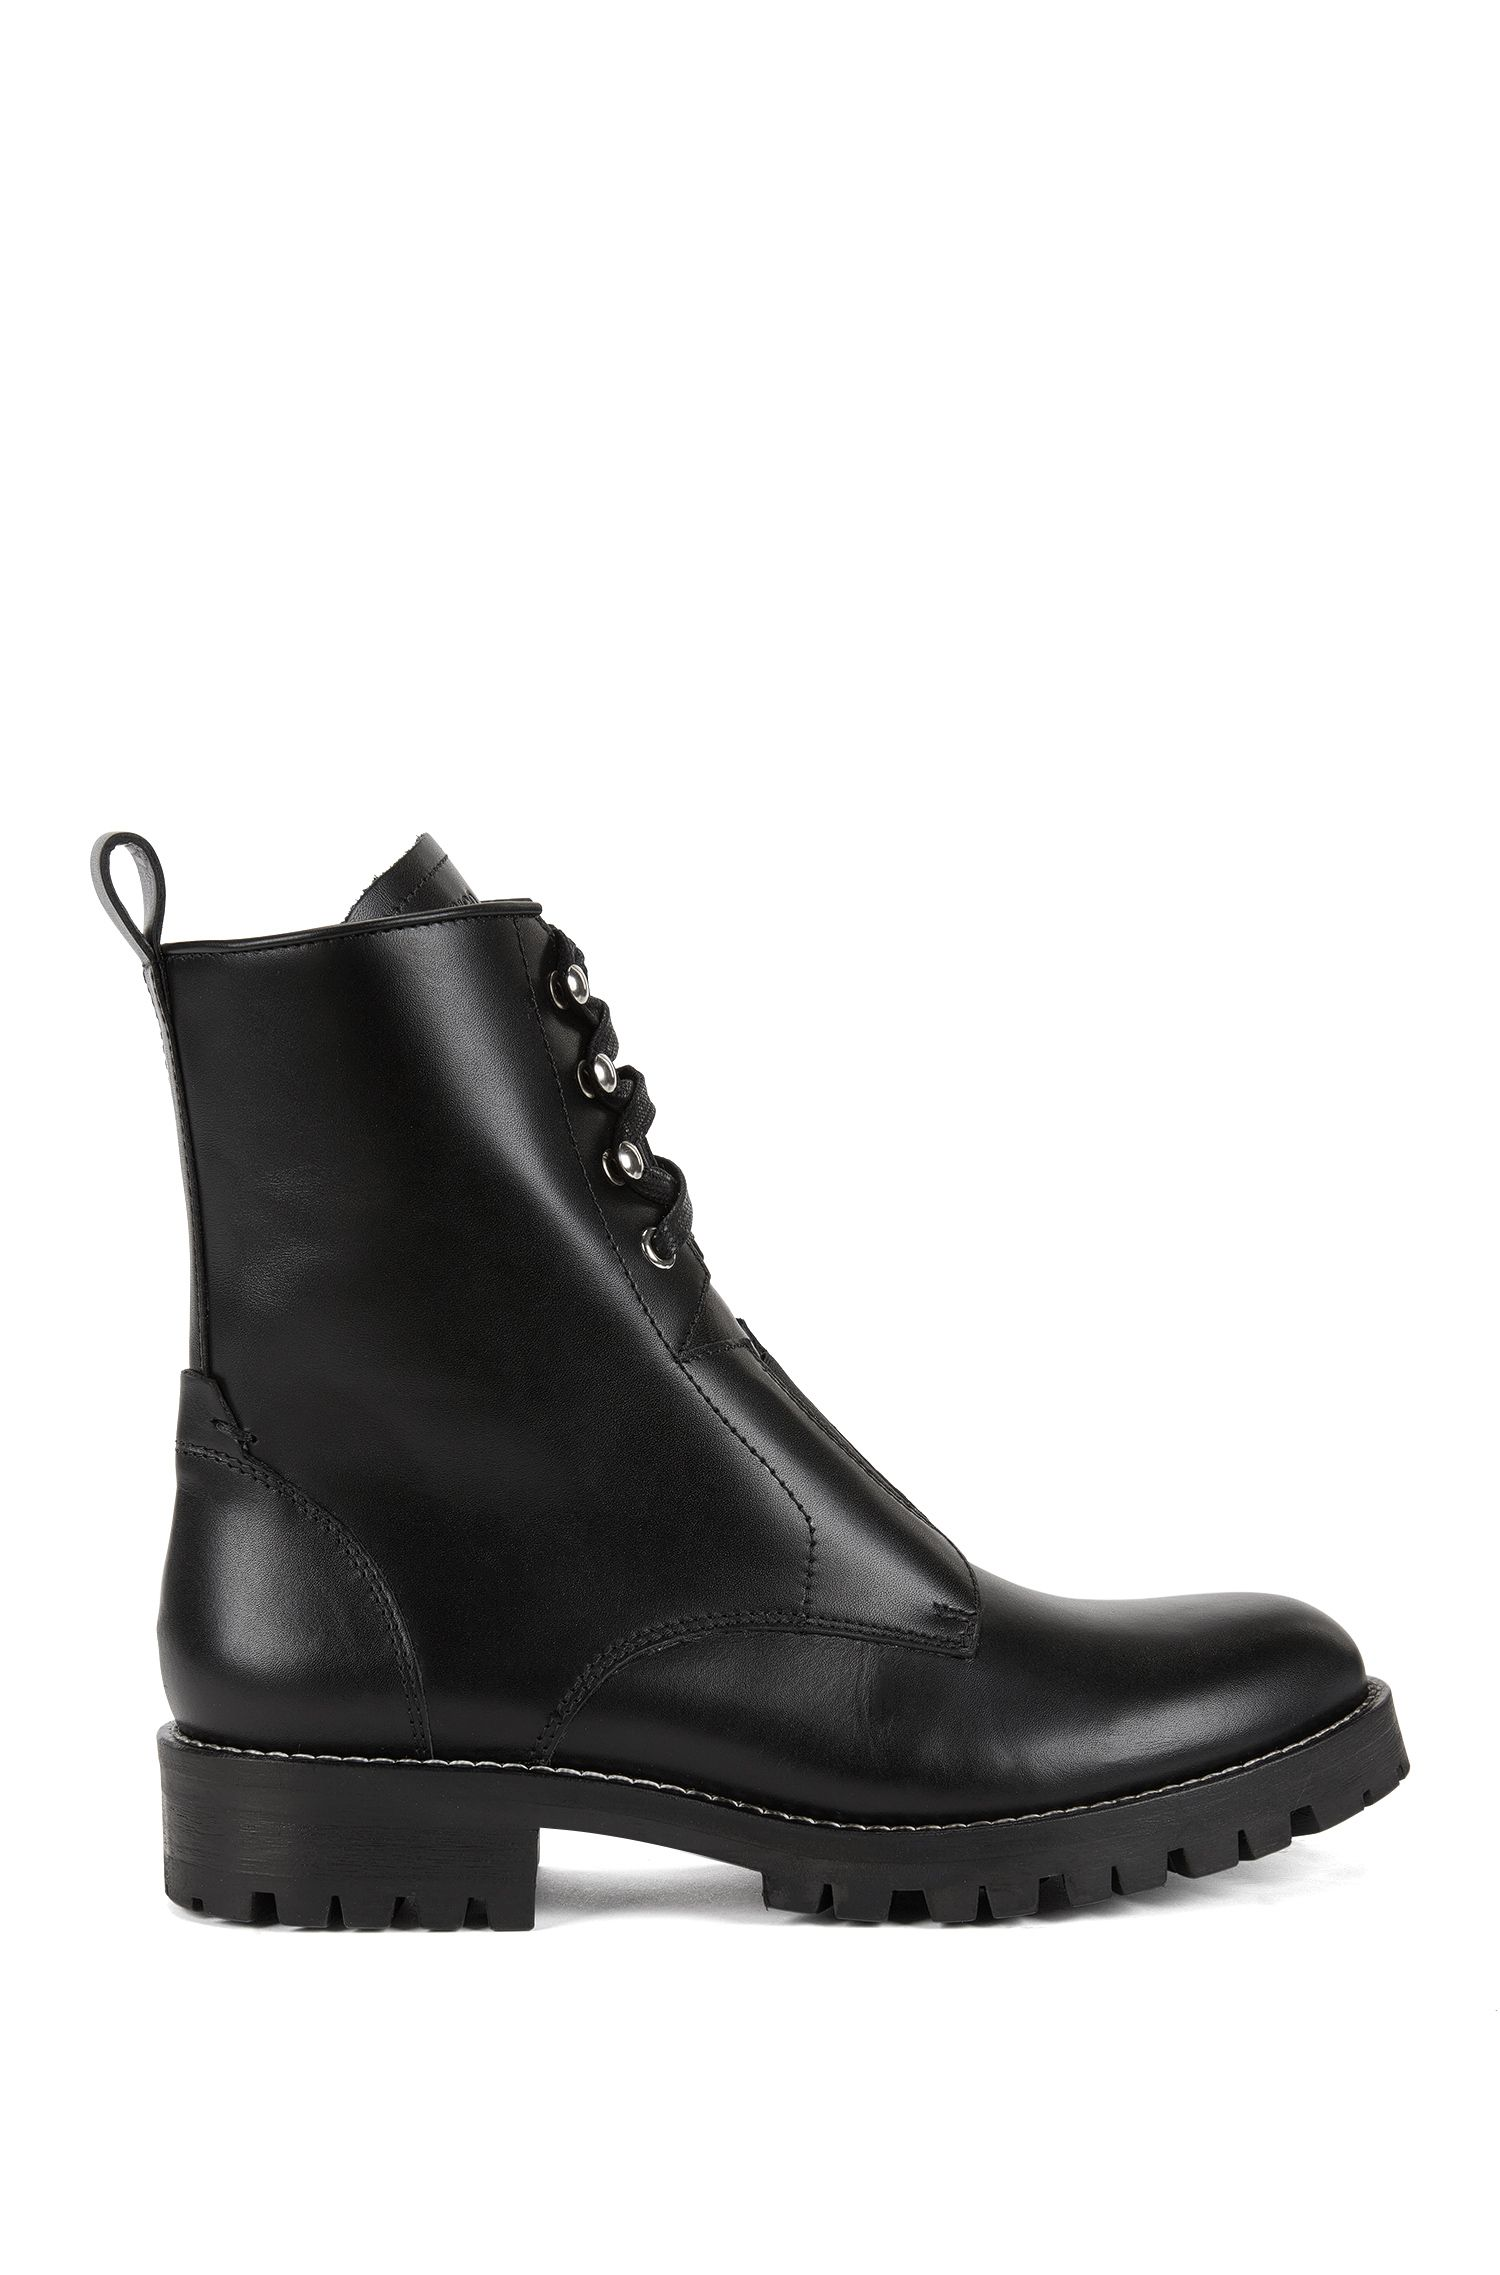 Lace-up boots in Italian leather